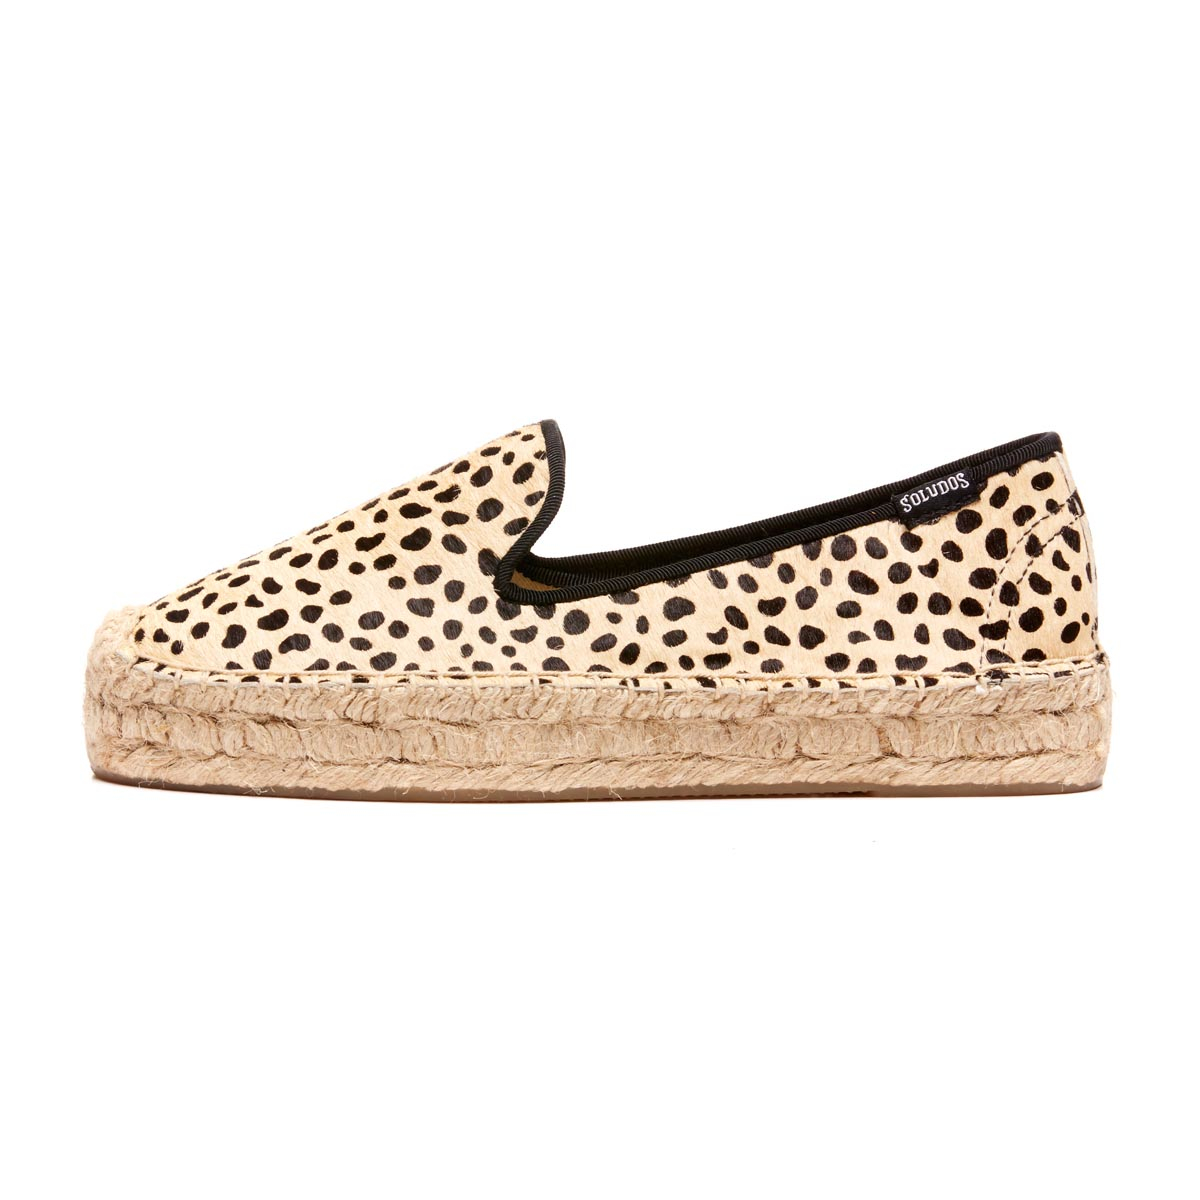 Soludos Printed Espadrille Sneakers discount cheapest price cheap sale store clearance popular discount wholesale price lzFk2qCuDP